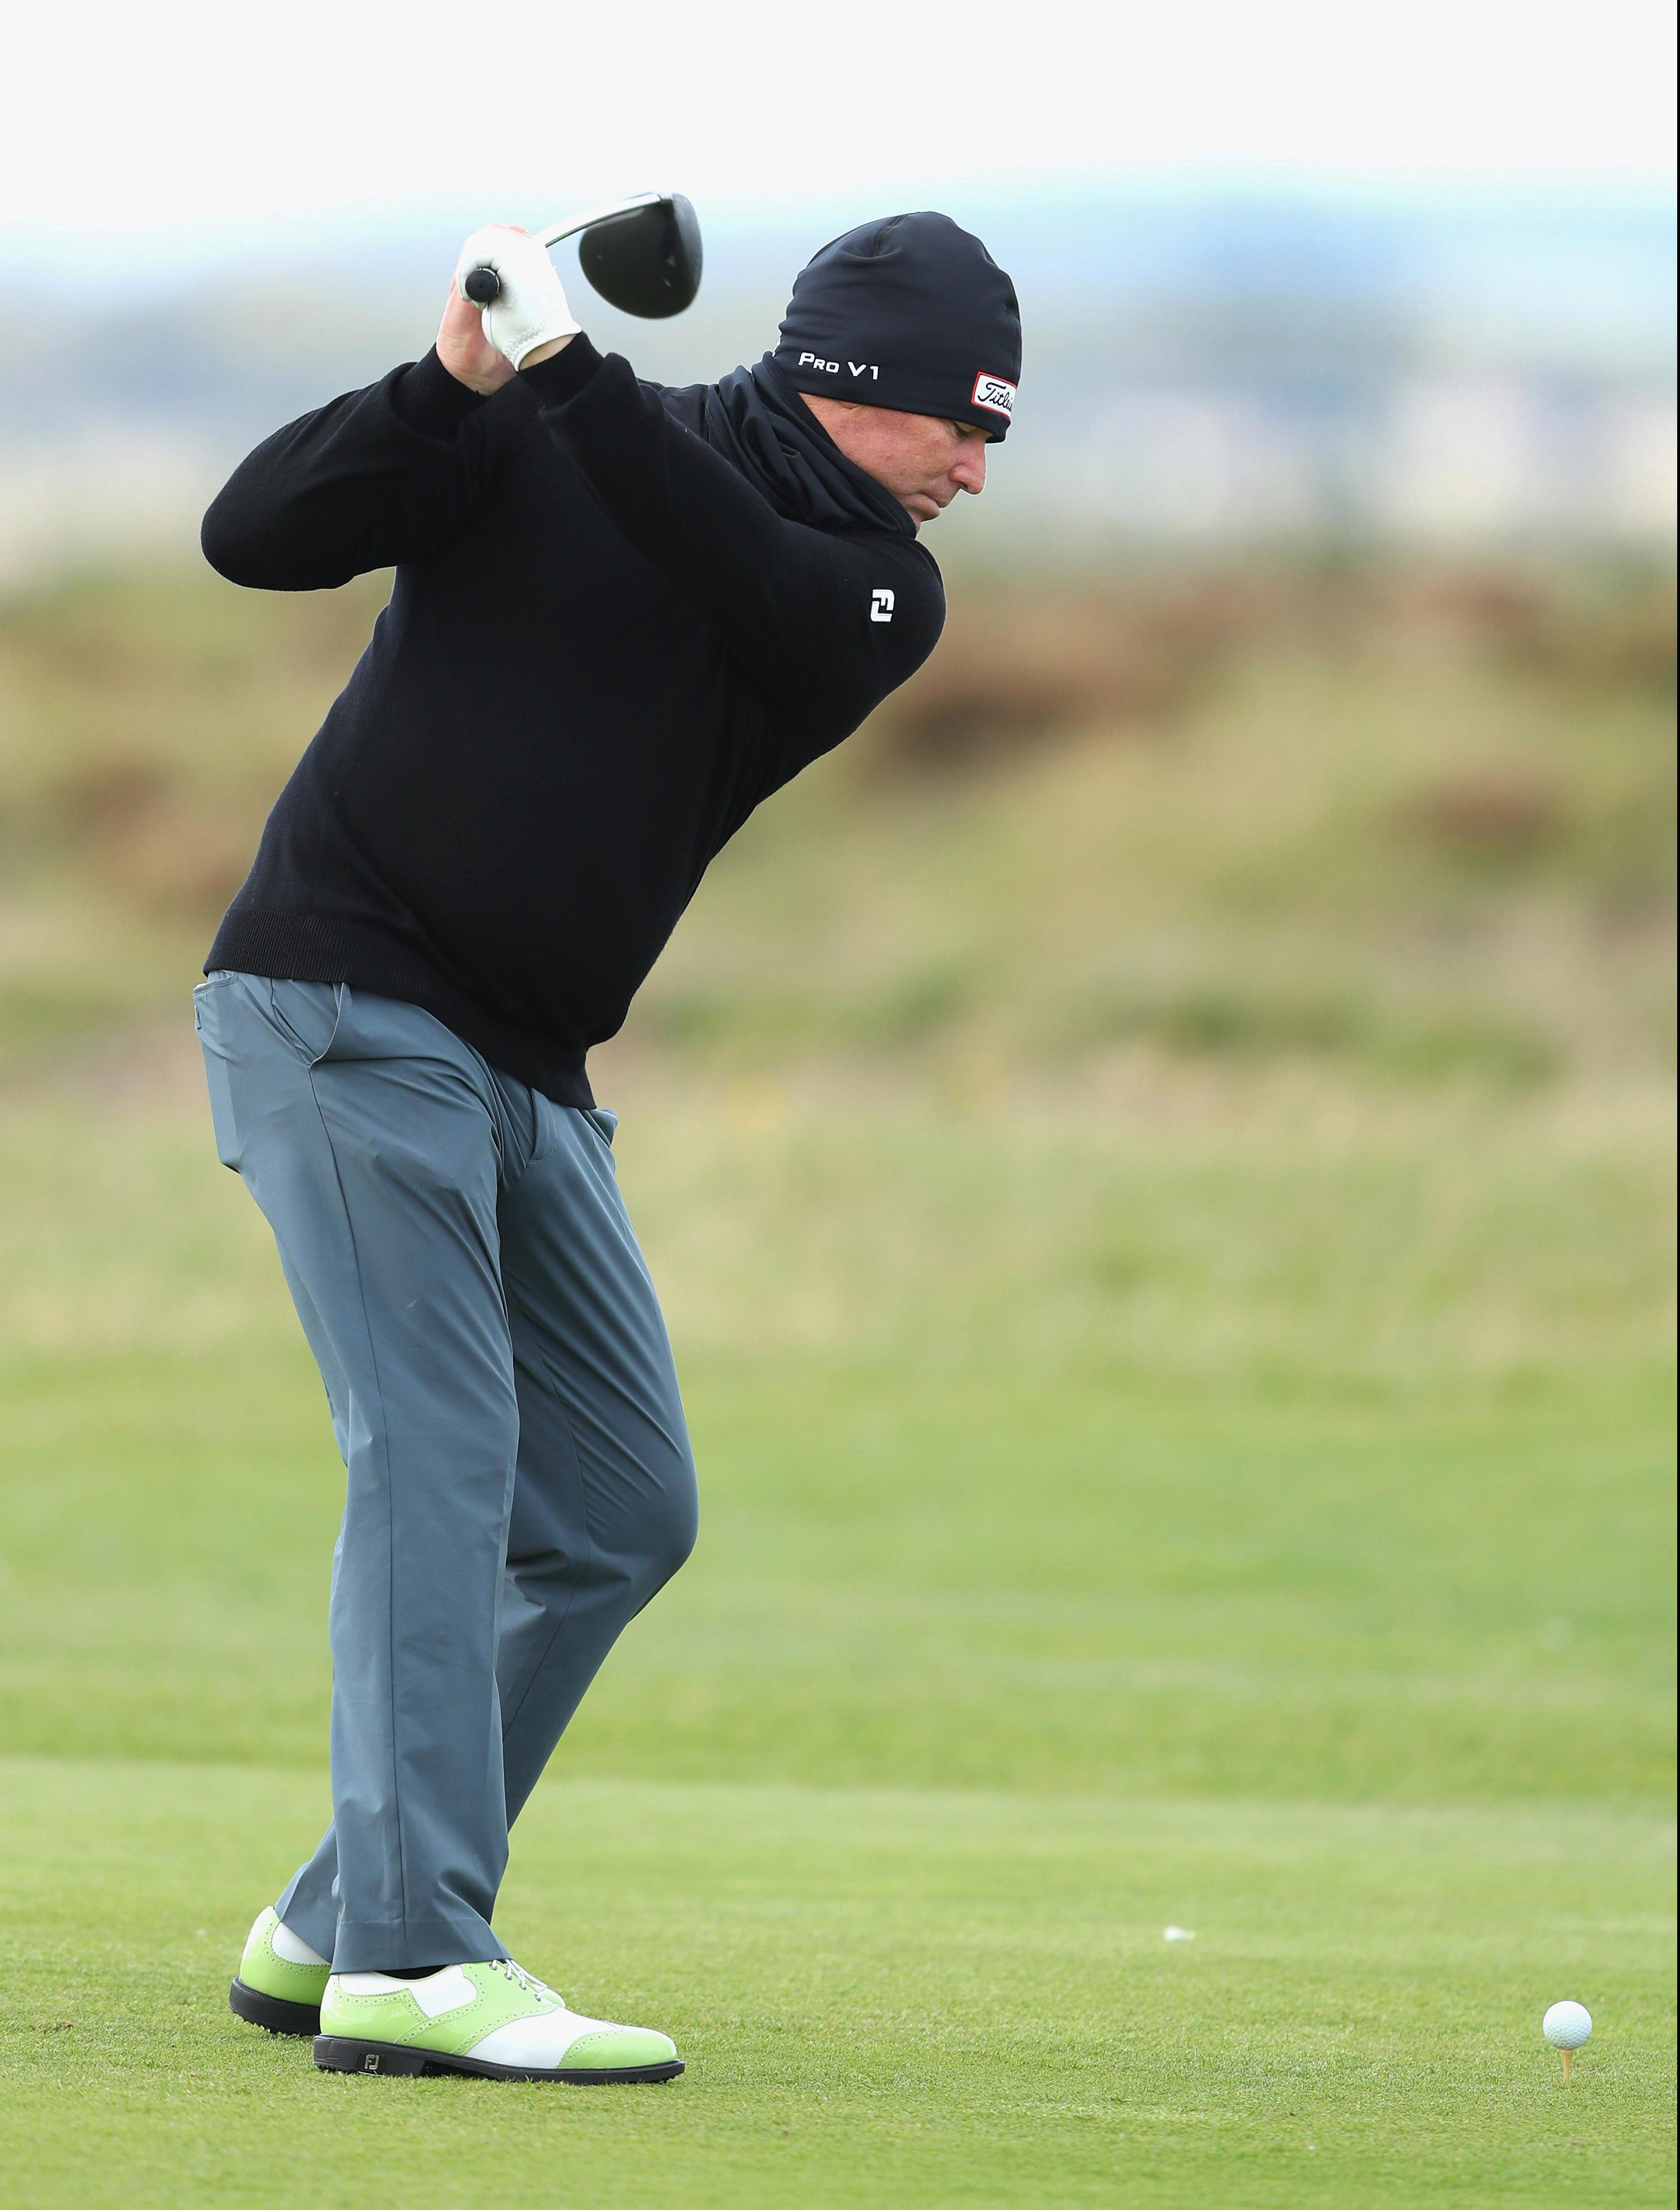 Shane Warne is 11 under in a three-way tie at the top of the leaderboard